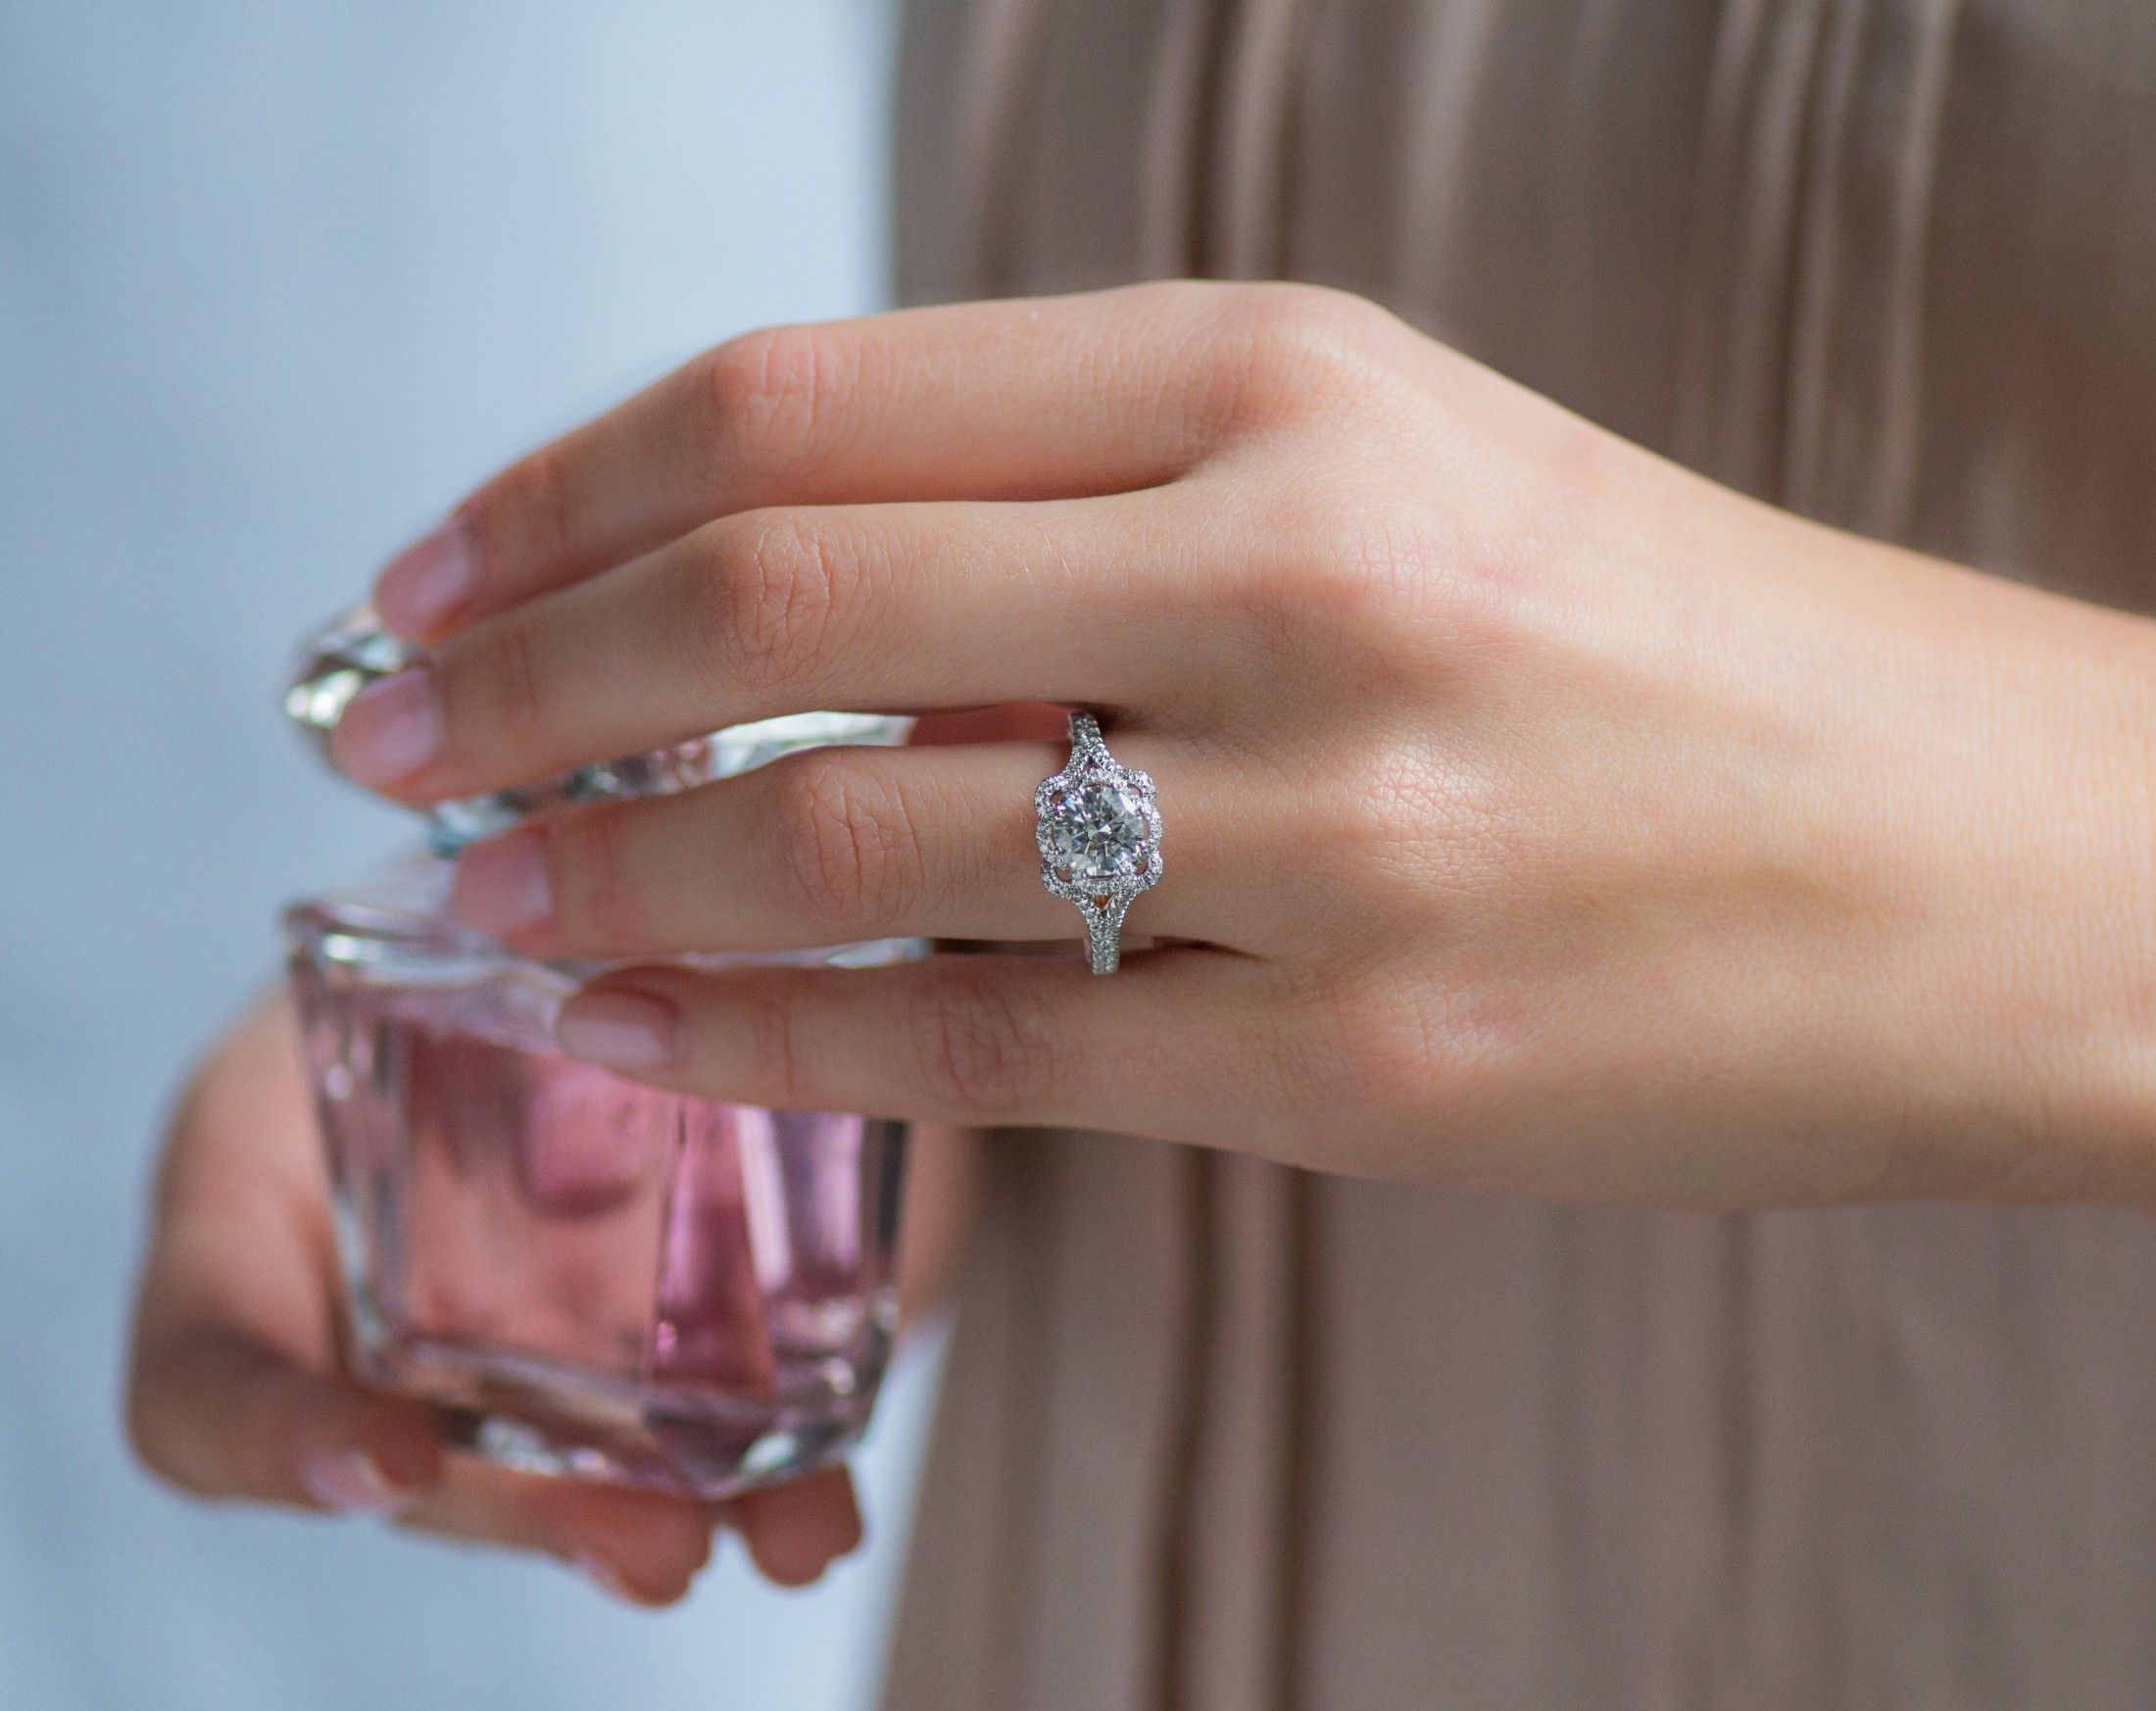 ad] Beautiful and unique engagement rings by James Allen to